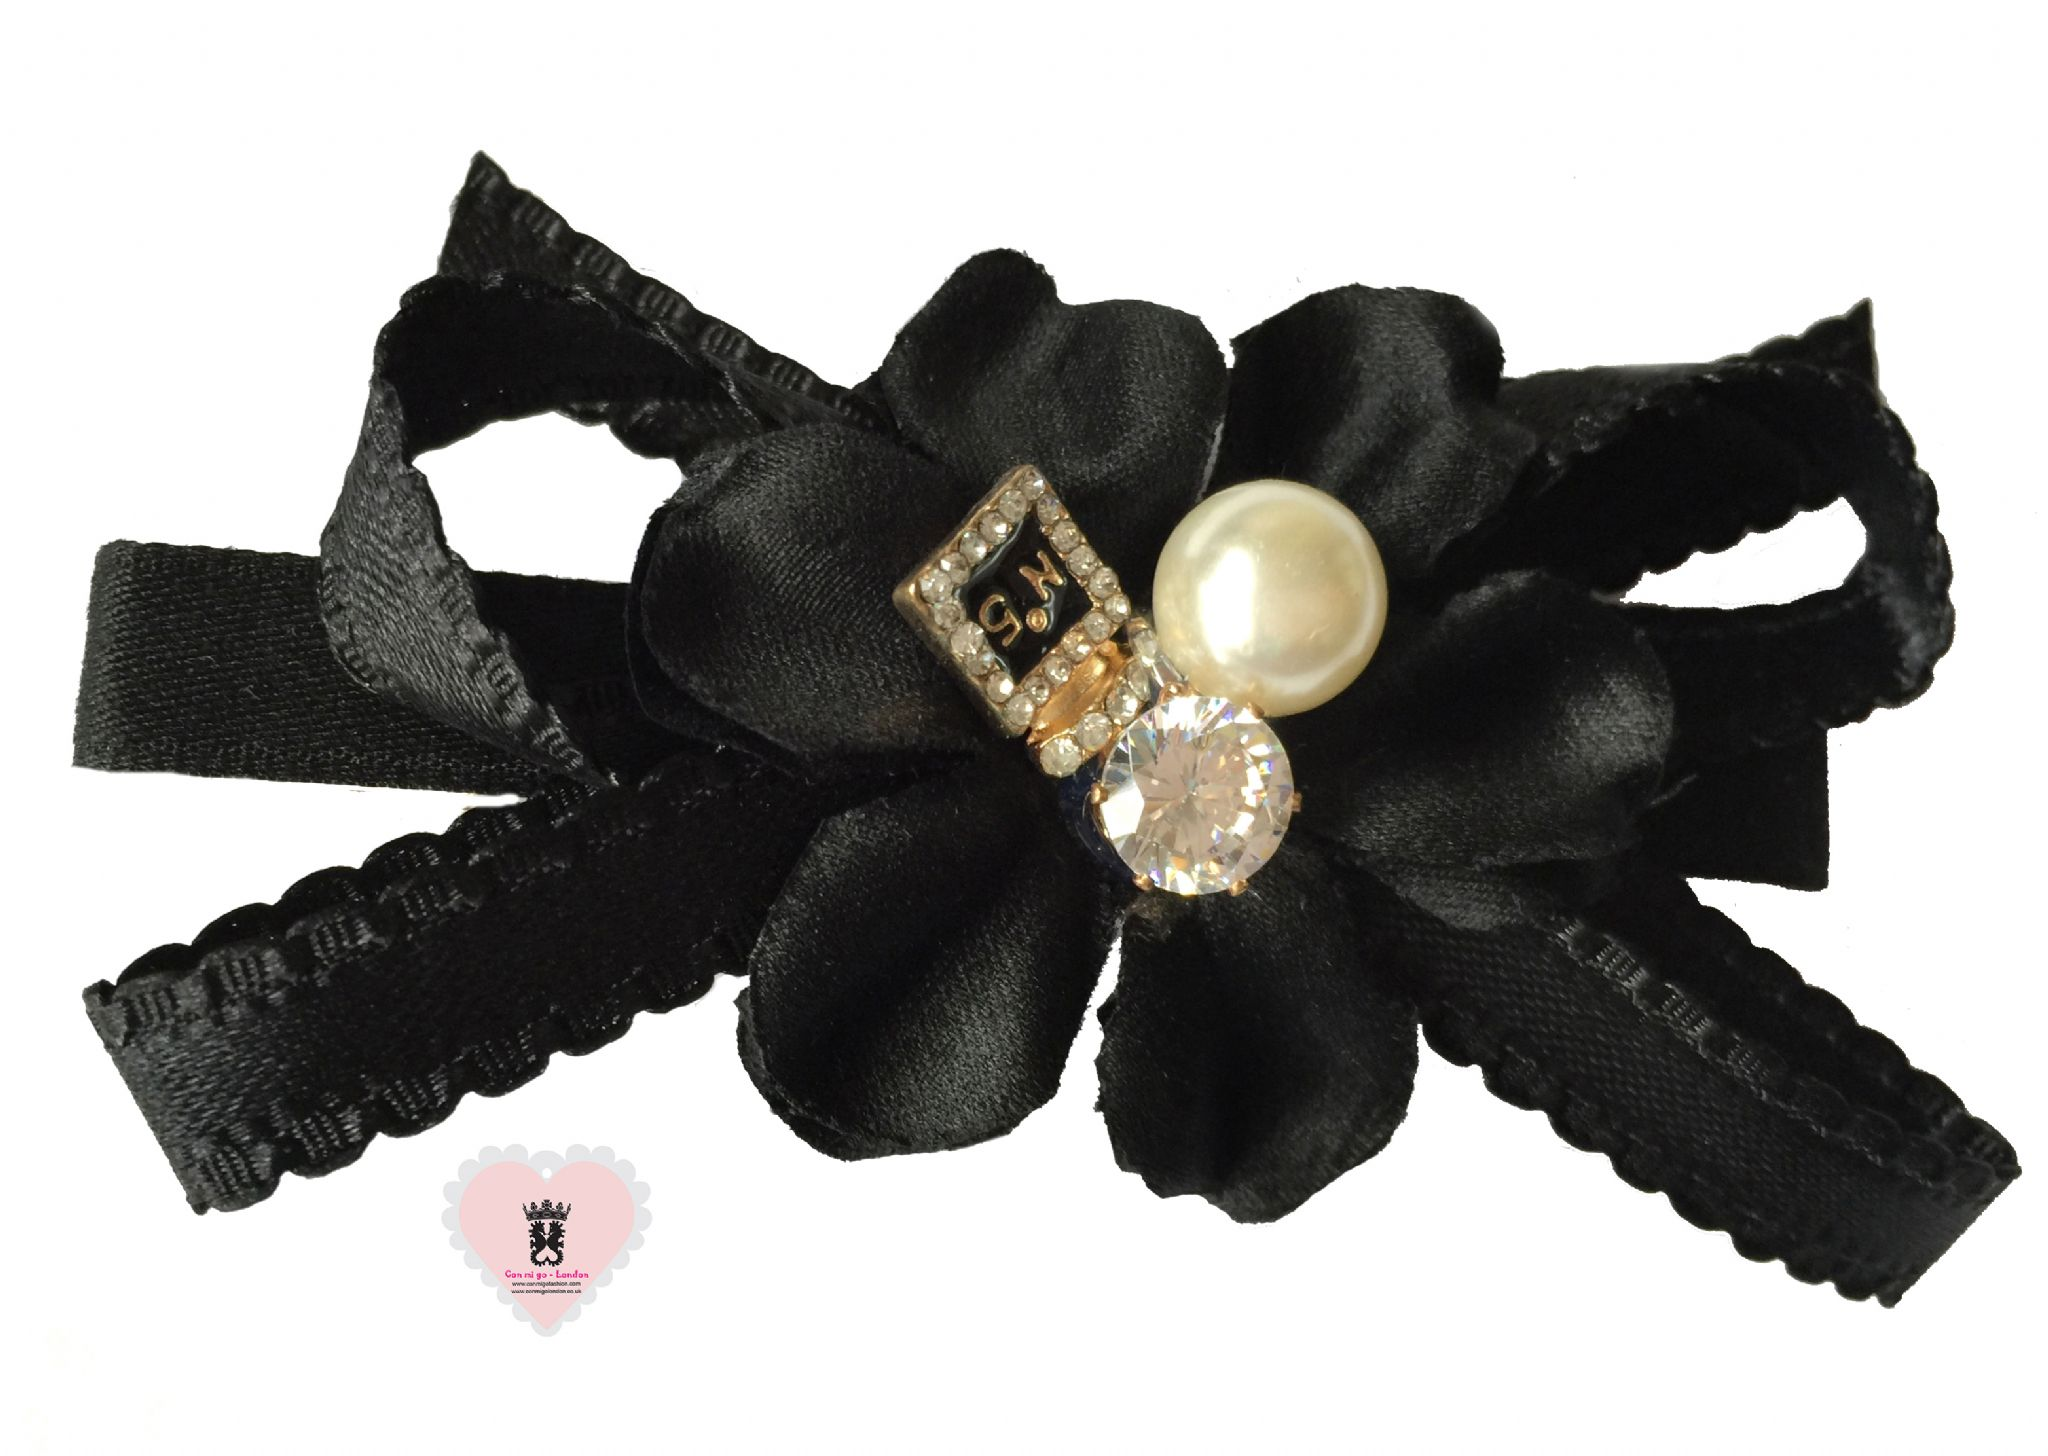 http://www.conmigolondon.co.uk/ekmps/shops/conmigo/images/1.-al0050-black-flower-with-pearl-and-sparkling-stone-hair-slide-15516-p.jpg